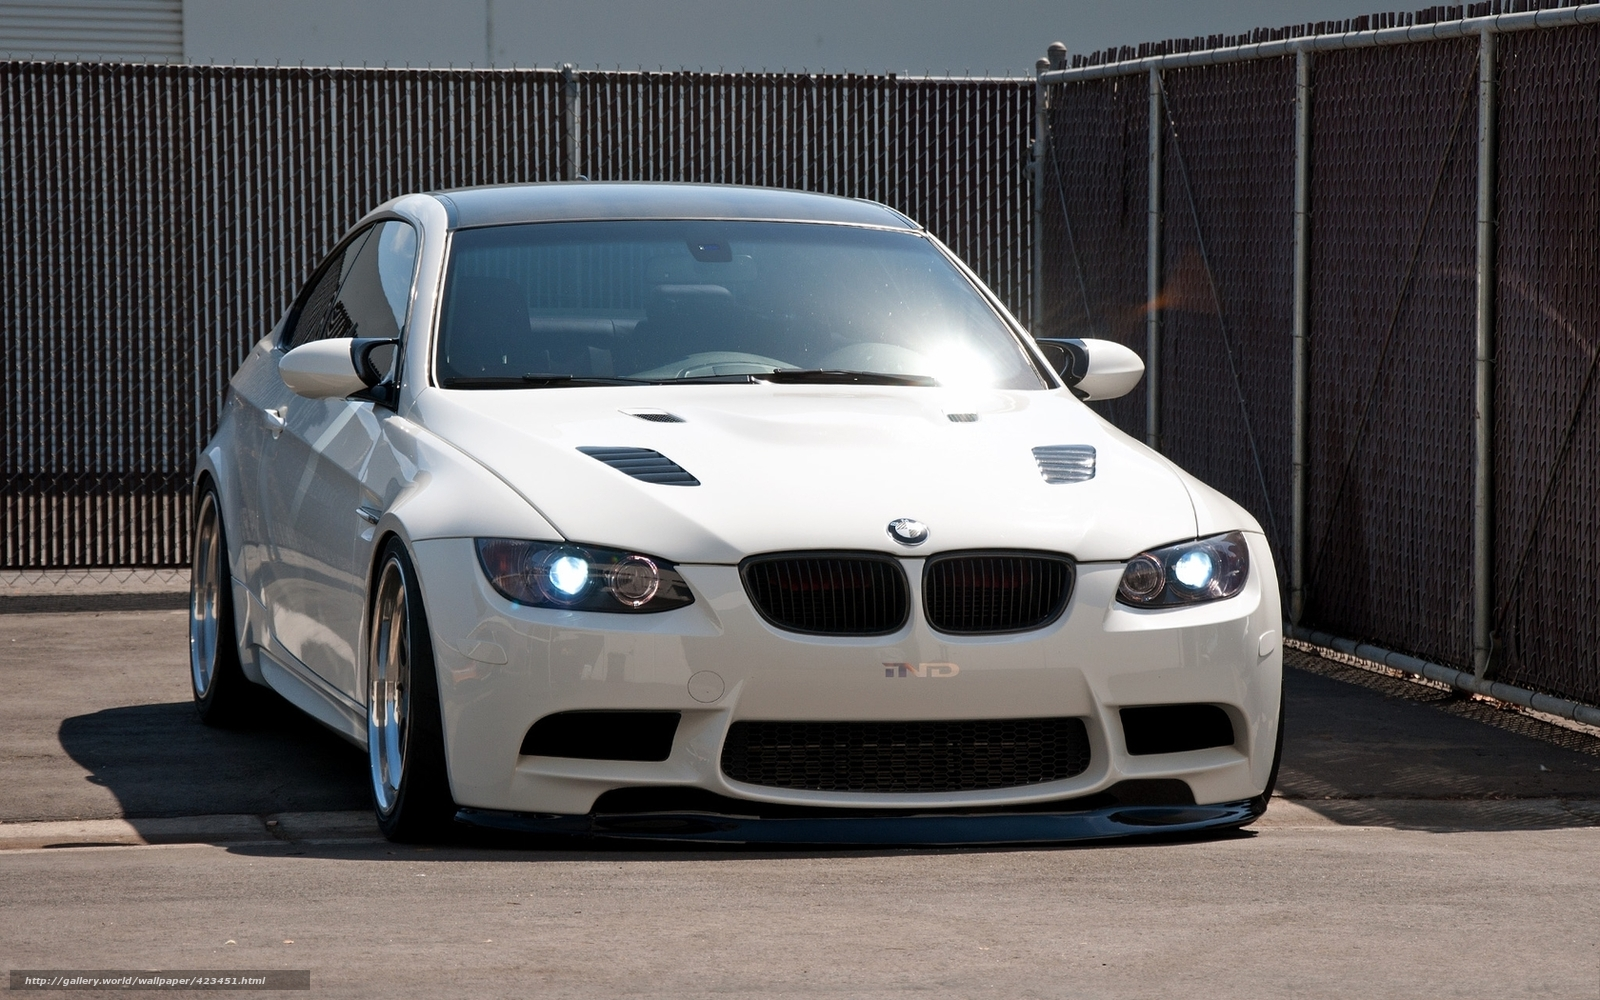 Download Wallpaper Bmw White Windshield Highlight Free